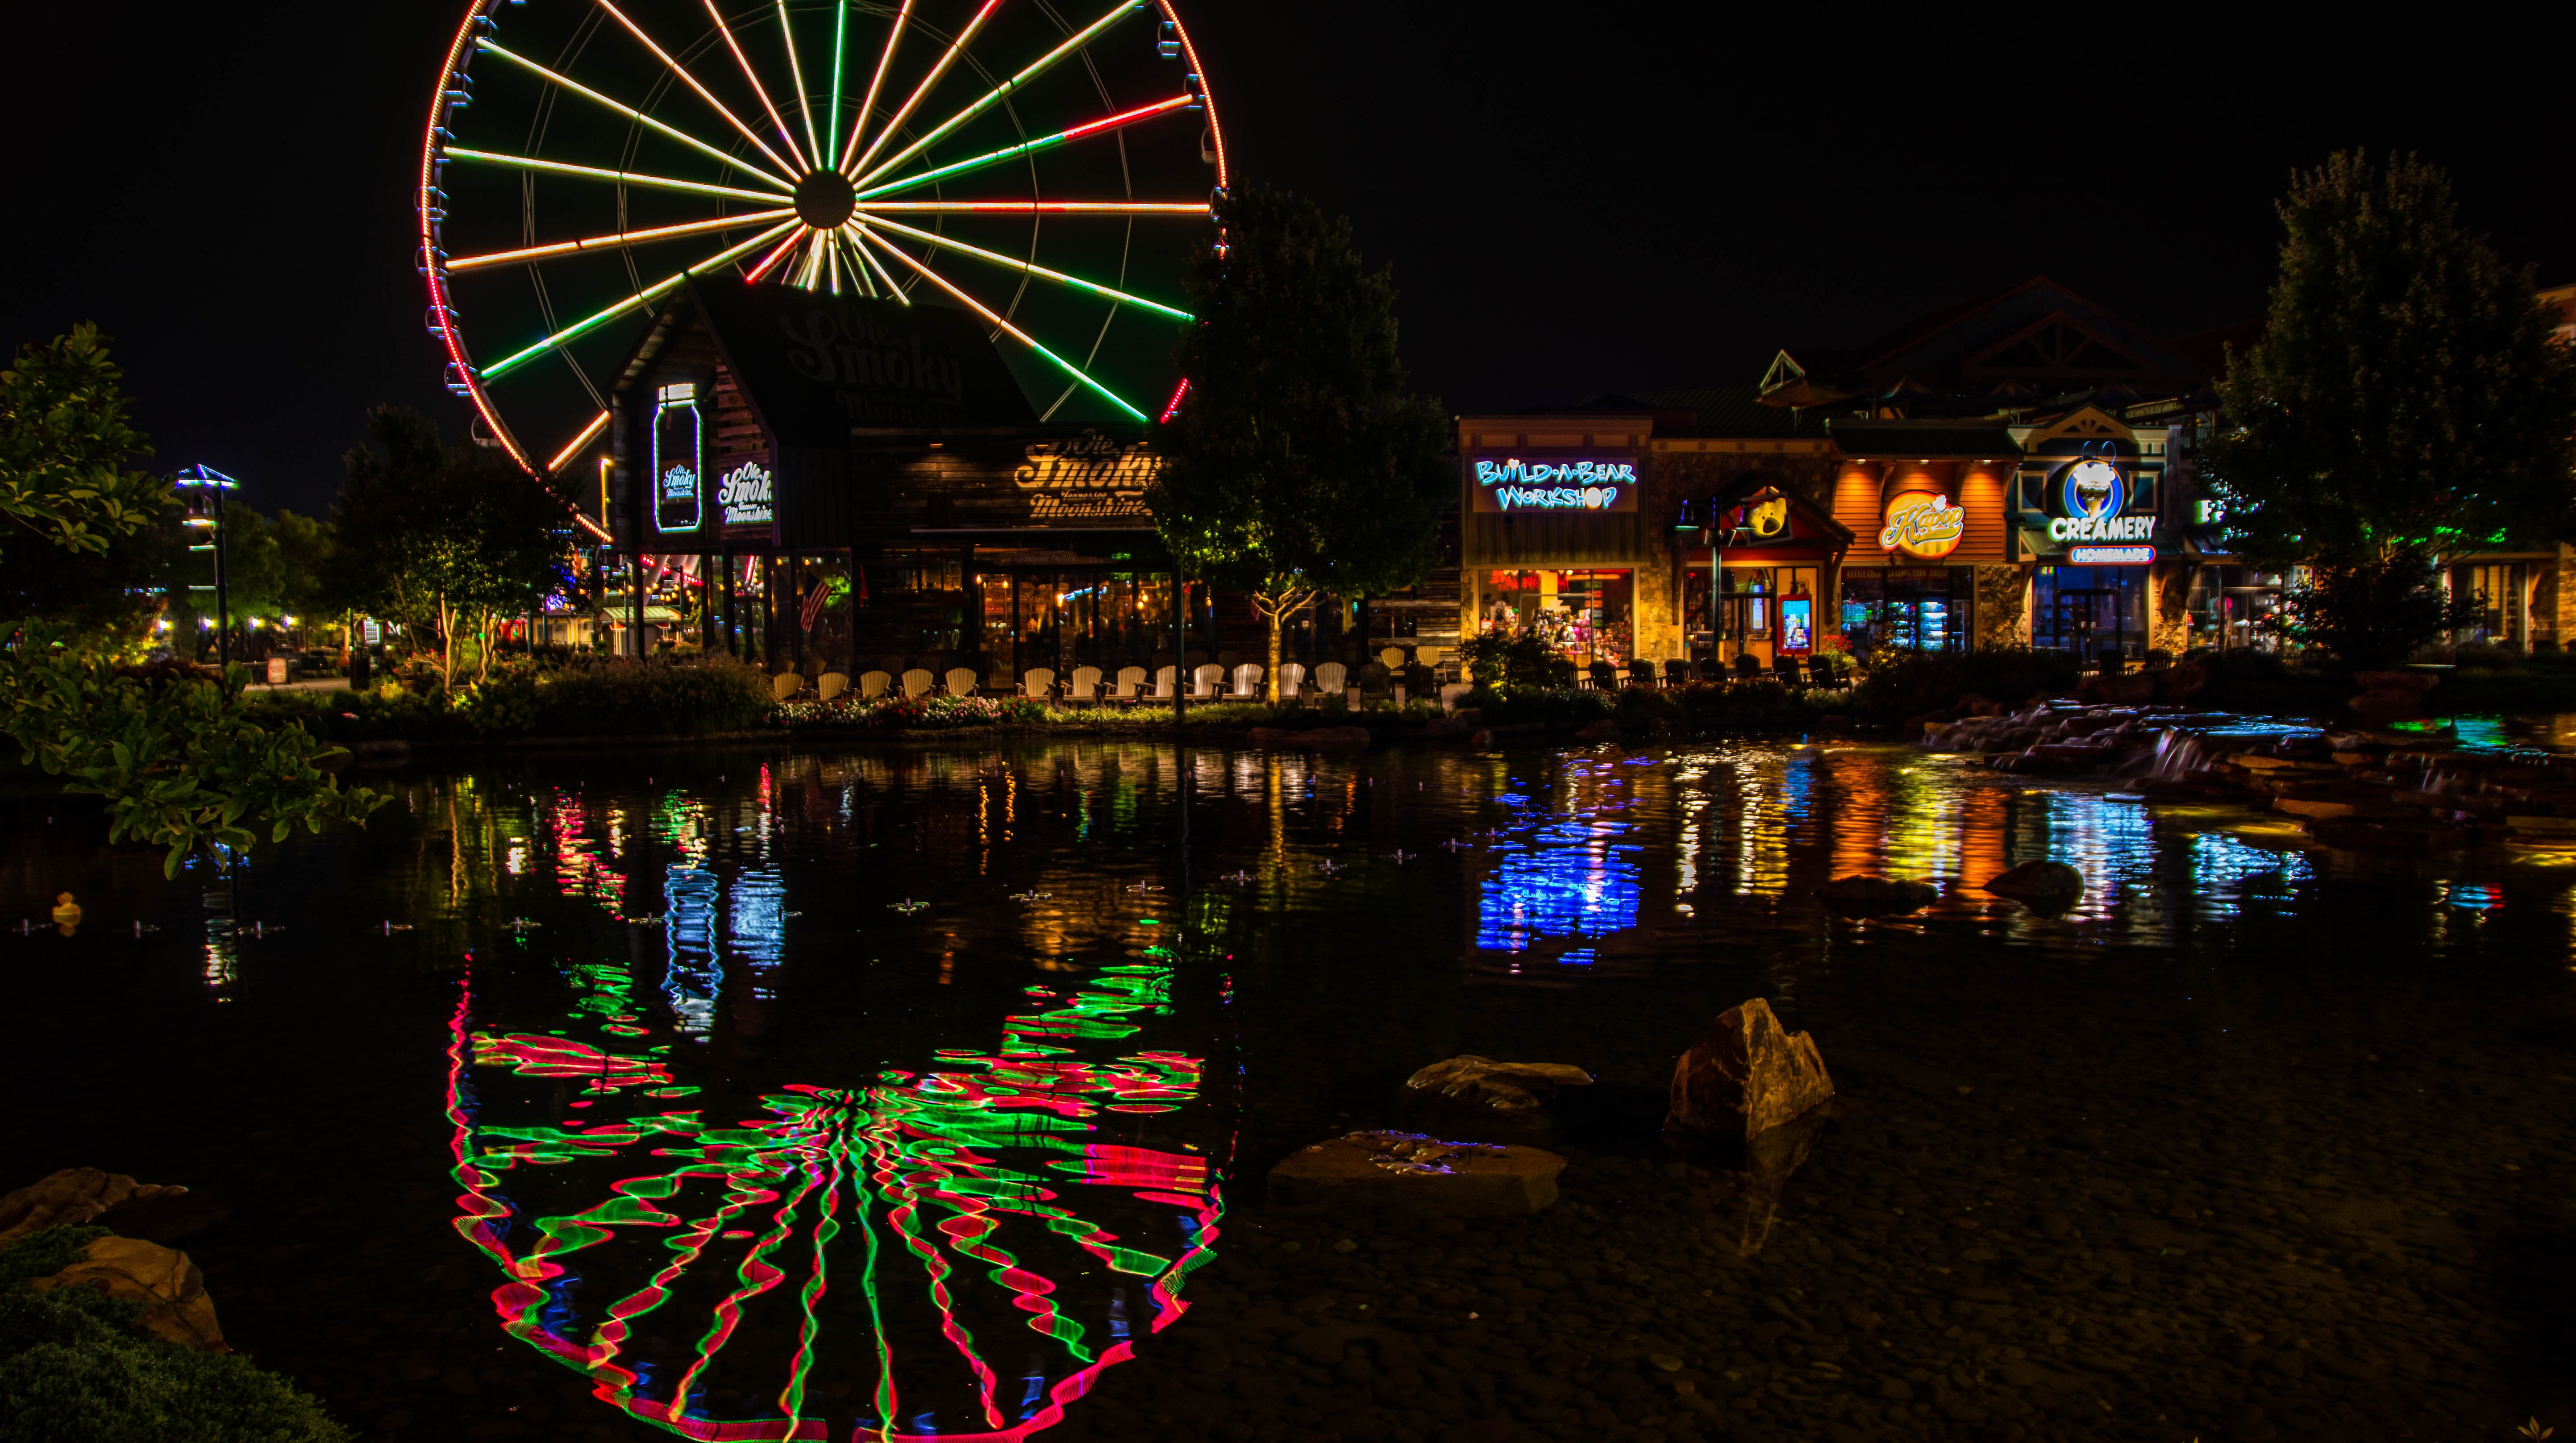 Lights reflect off the water at The Island in Pigeon Forge in Sevier County before sunrise on Monday, Aug. 27, 2018.  Visit Kennedy's website to see more of his photos, https://mikekennedyphotography.smugmug.com.